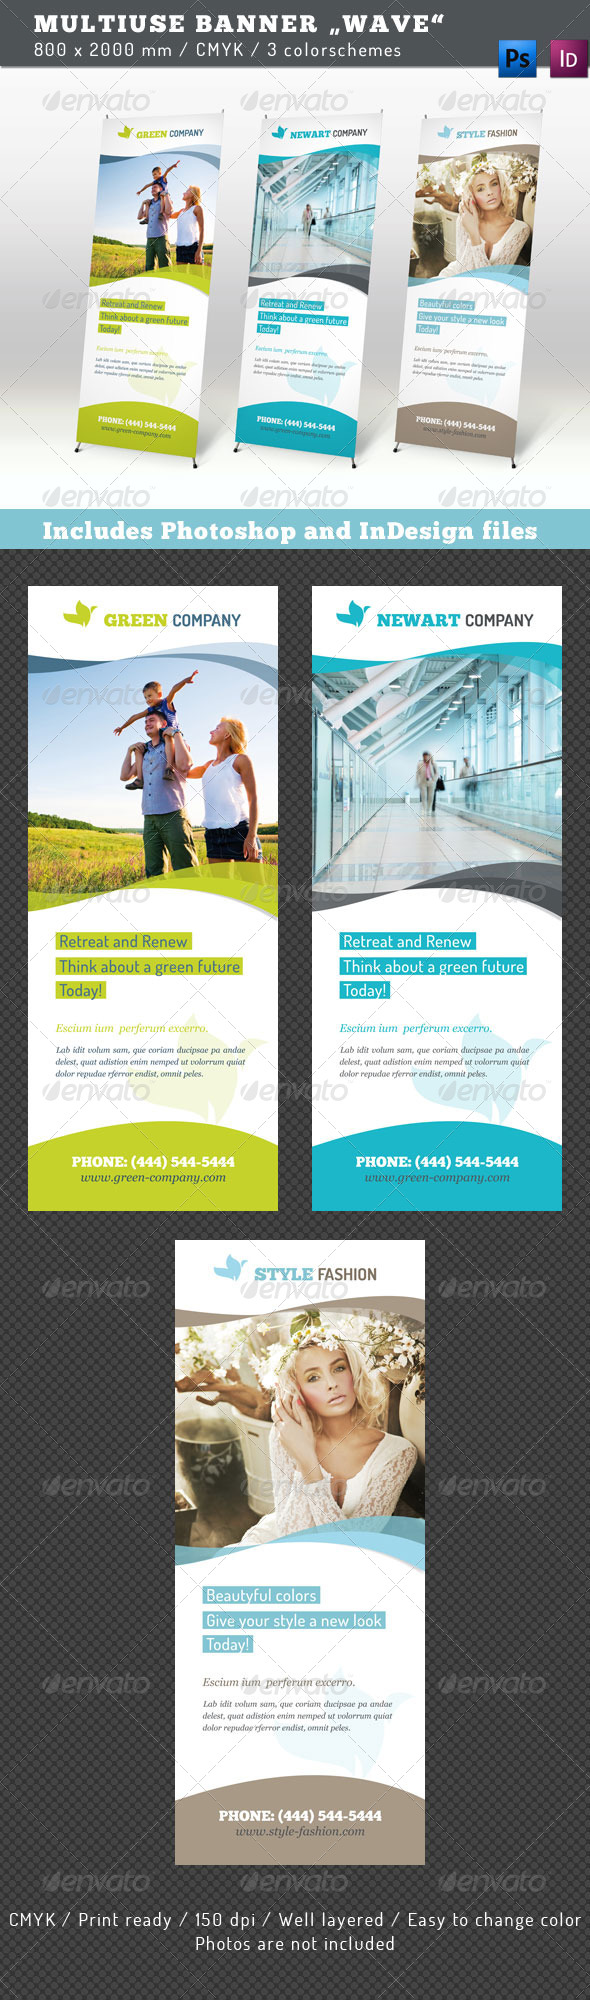 GraphicRiver Multiuse Banner Wave 4389755